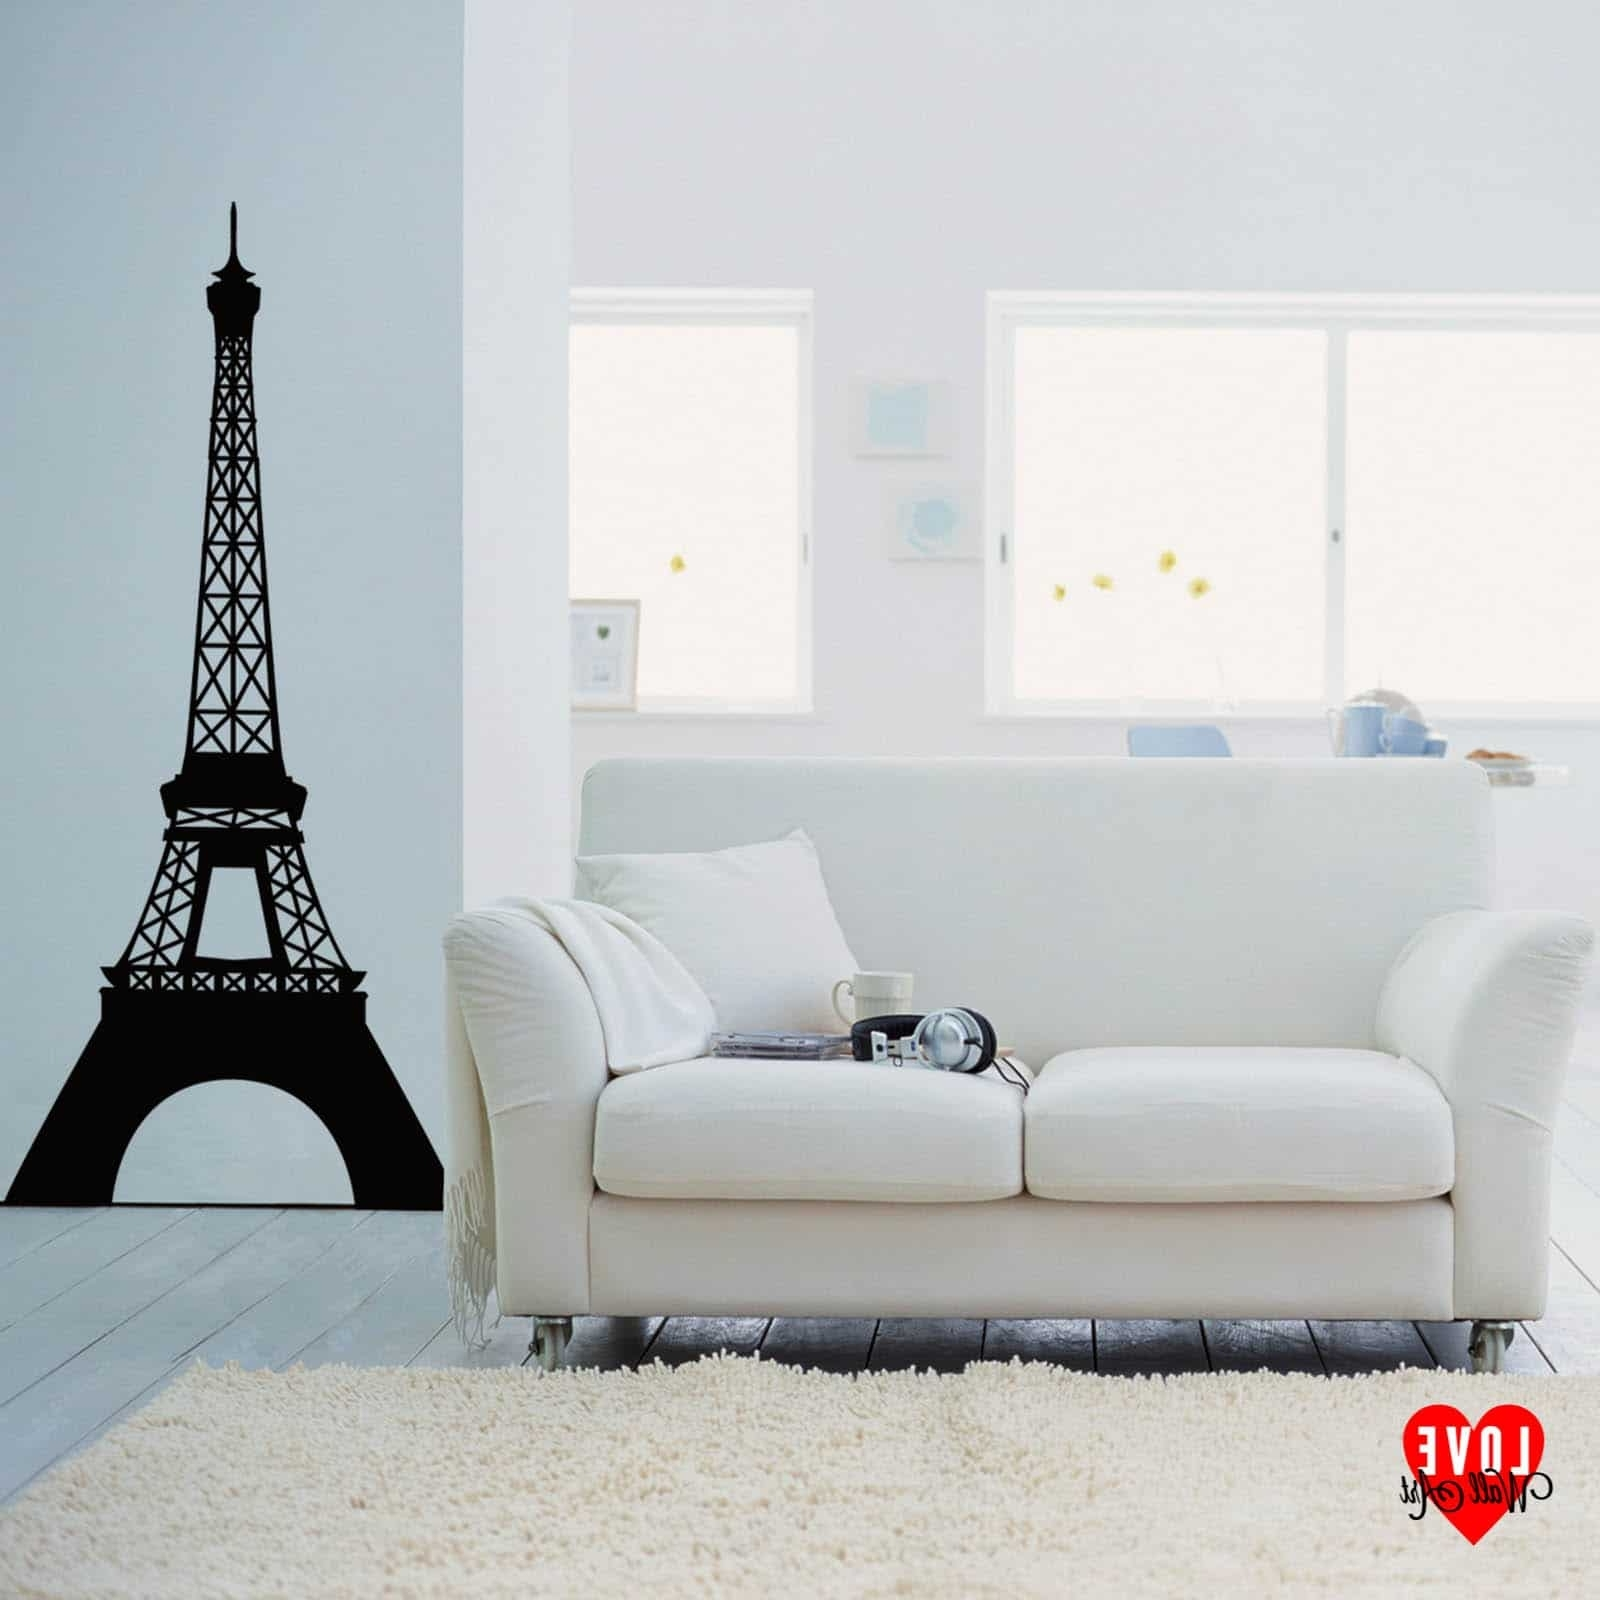 Trendy Eiffel Tower Wall Art Pertaining To Eiffel Tower Wall Sticker Wall Art Design Paris France (View 13 of 15)